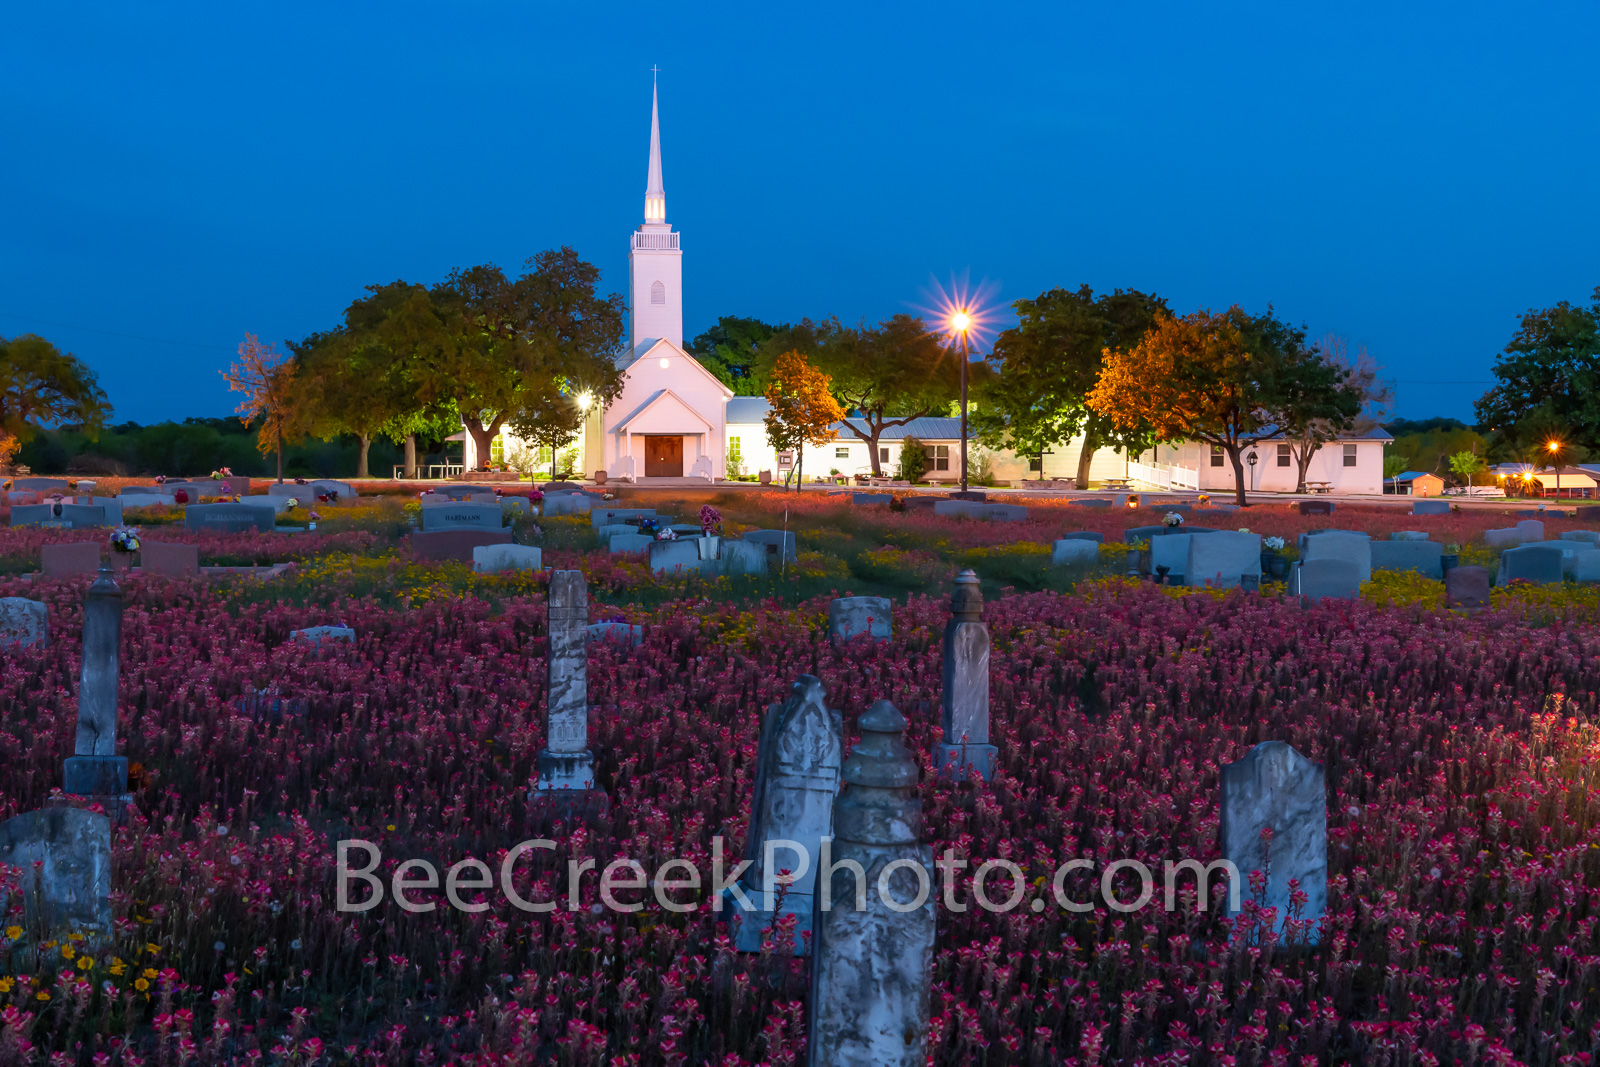 Texas church, country road, back road, wildflowers, indian paint brush, yellow daisy, cementary, head stones, religious, texas church night, church, spring, texas wildflowers, graves, country,  , photo